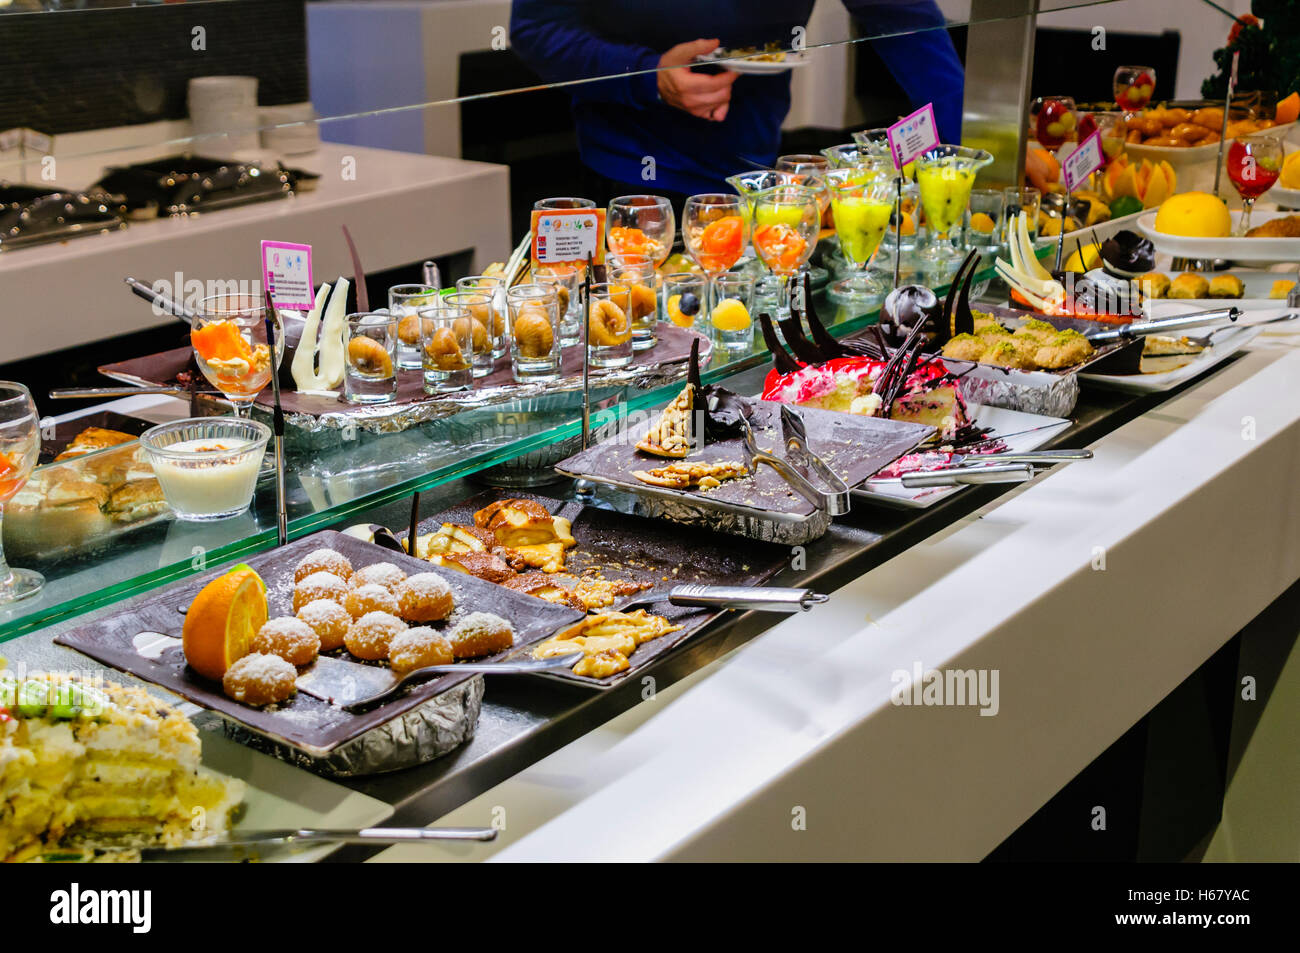 Dessets consisting of cakes, mousses and fruit at the buffet of a hotel restaurant Stock Photo